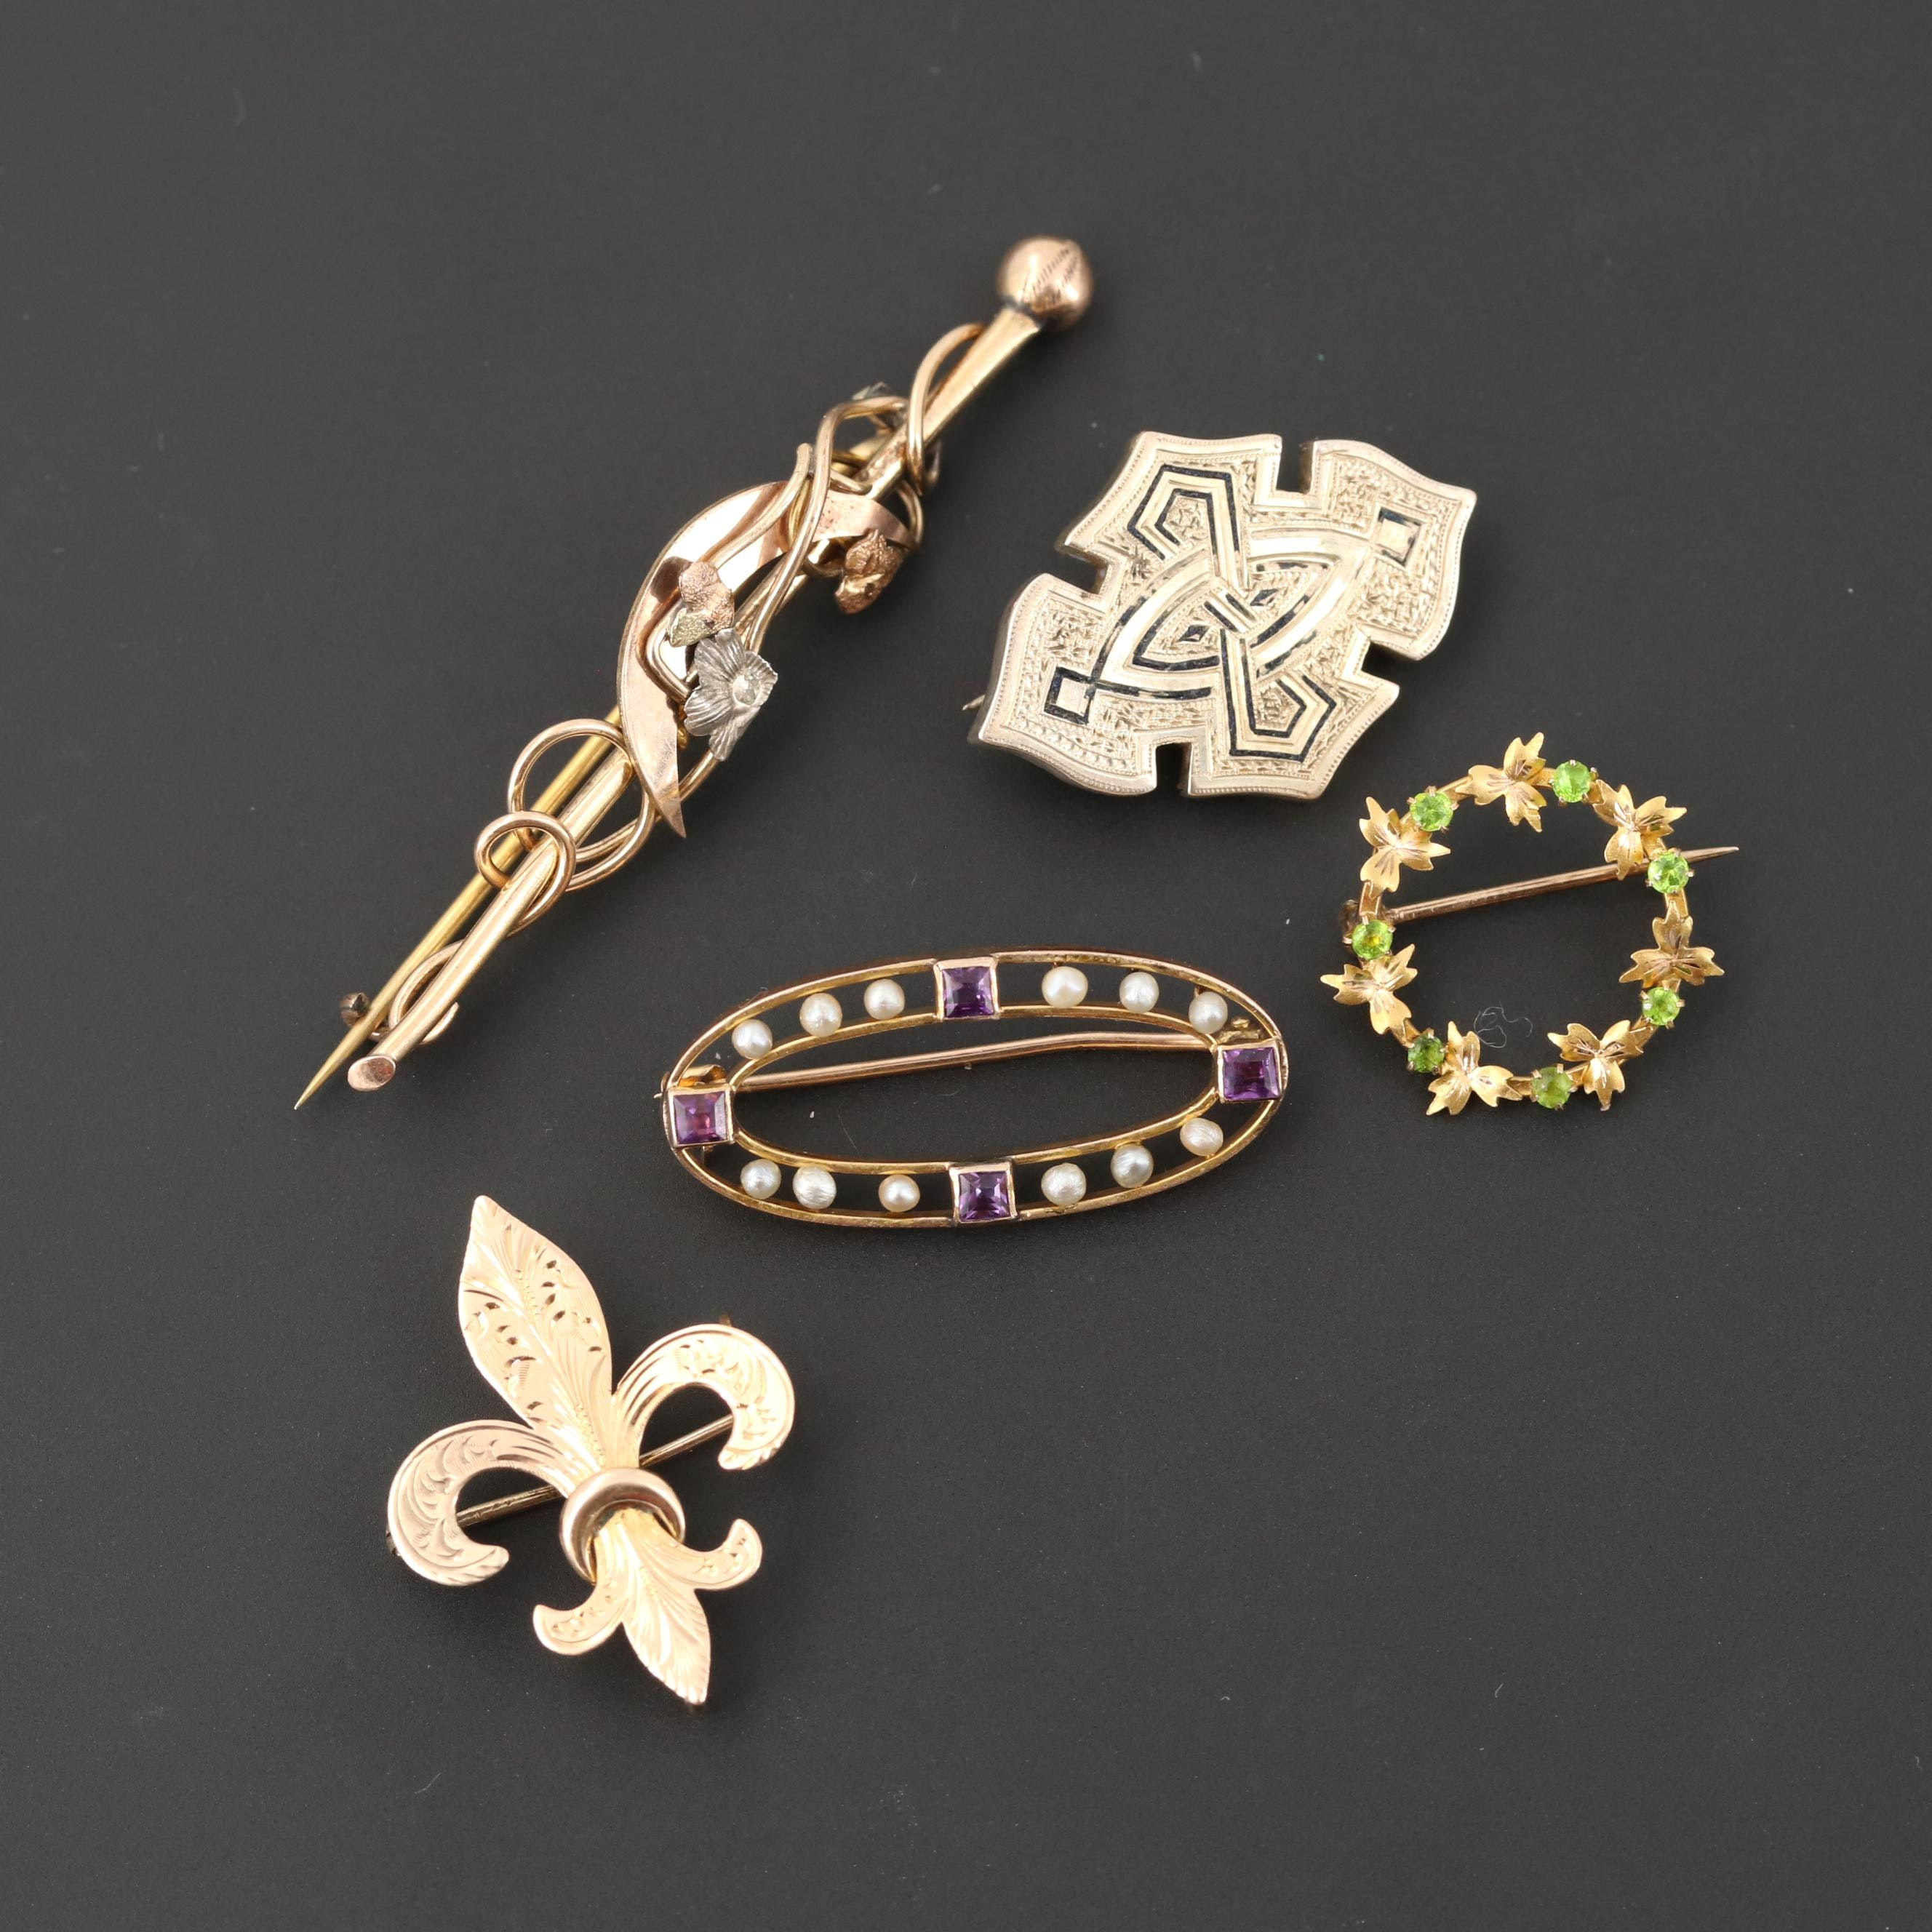 Antique 10K Yellow Gold and Gold Tone Brooches Featuring Fleur de lis